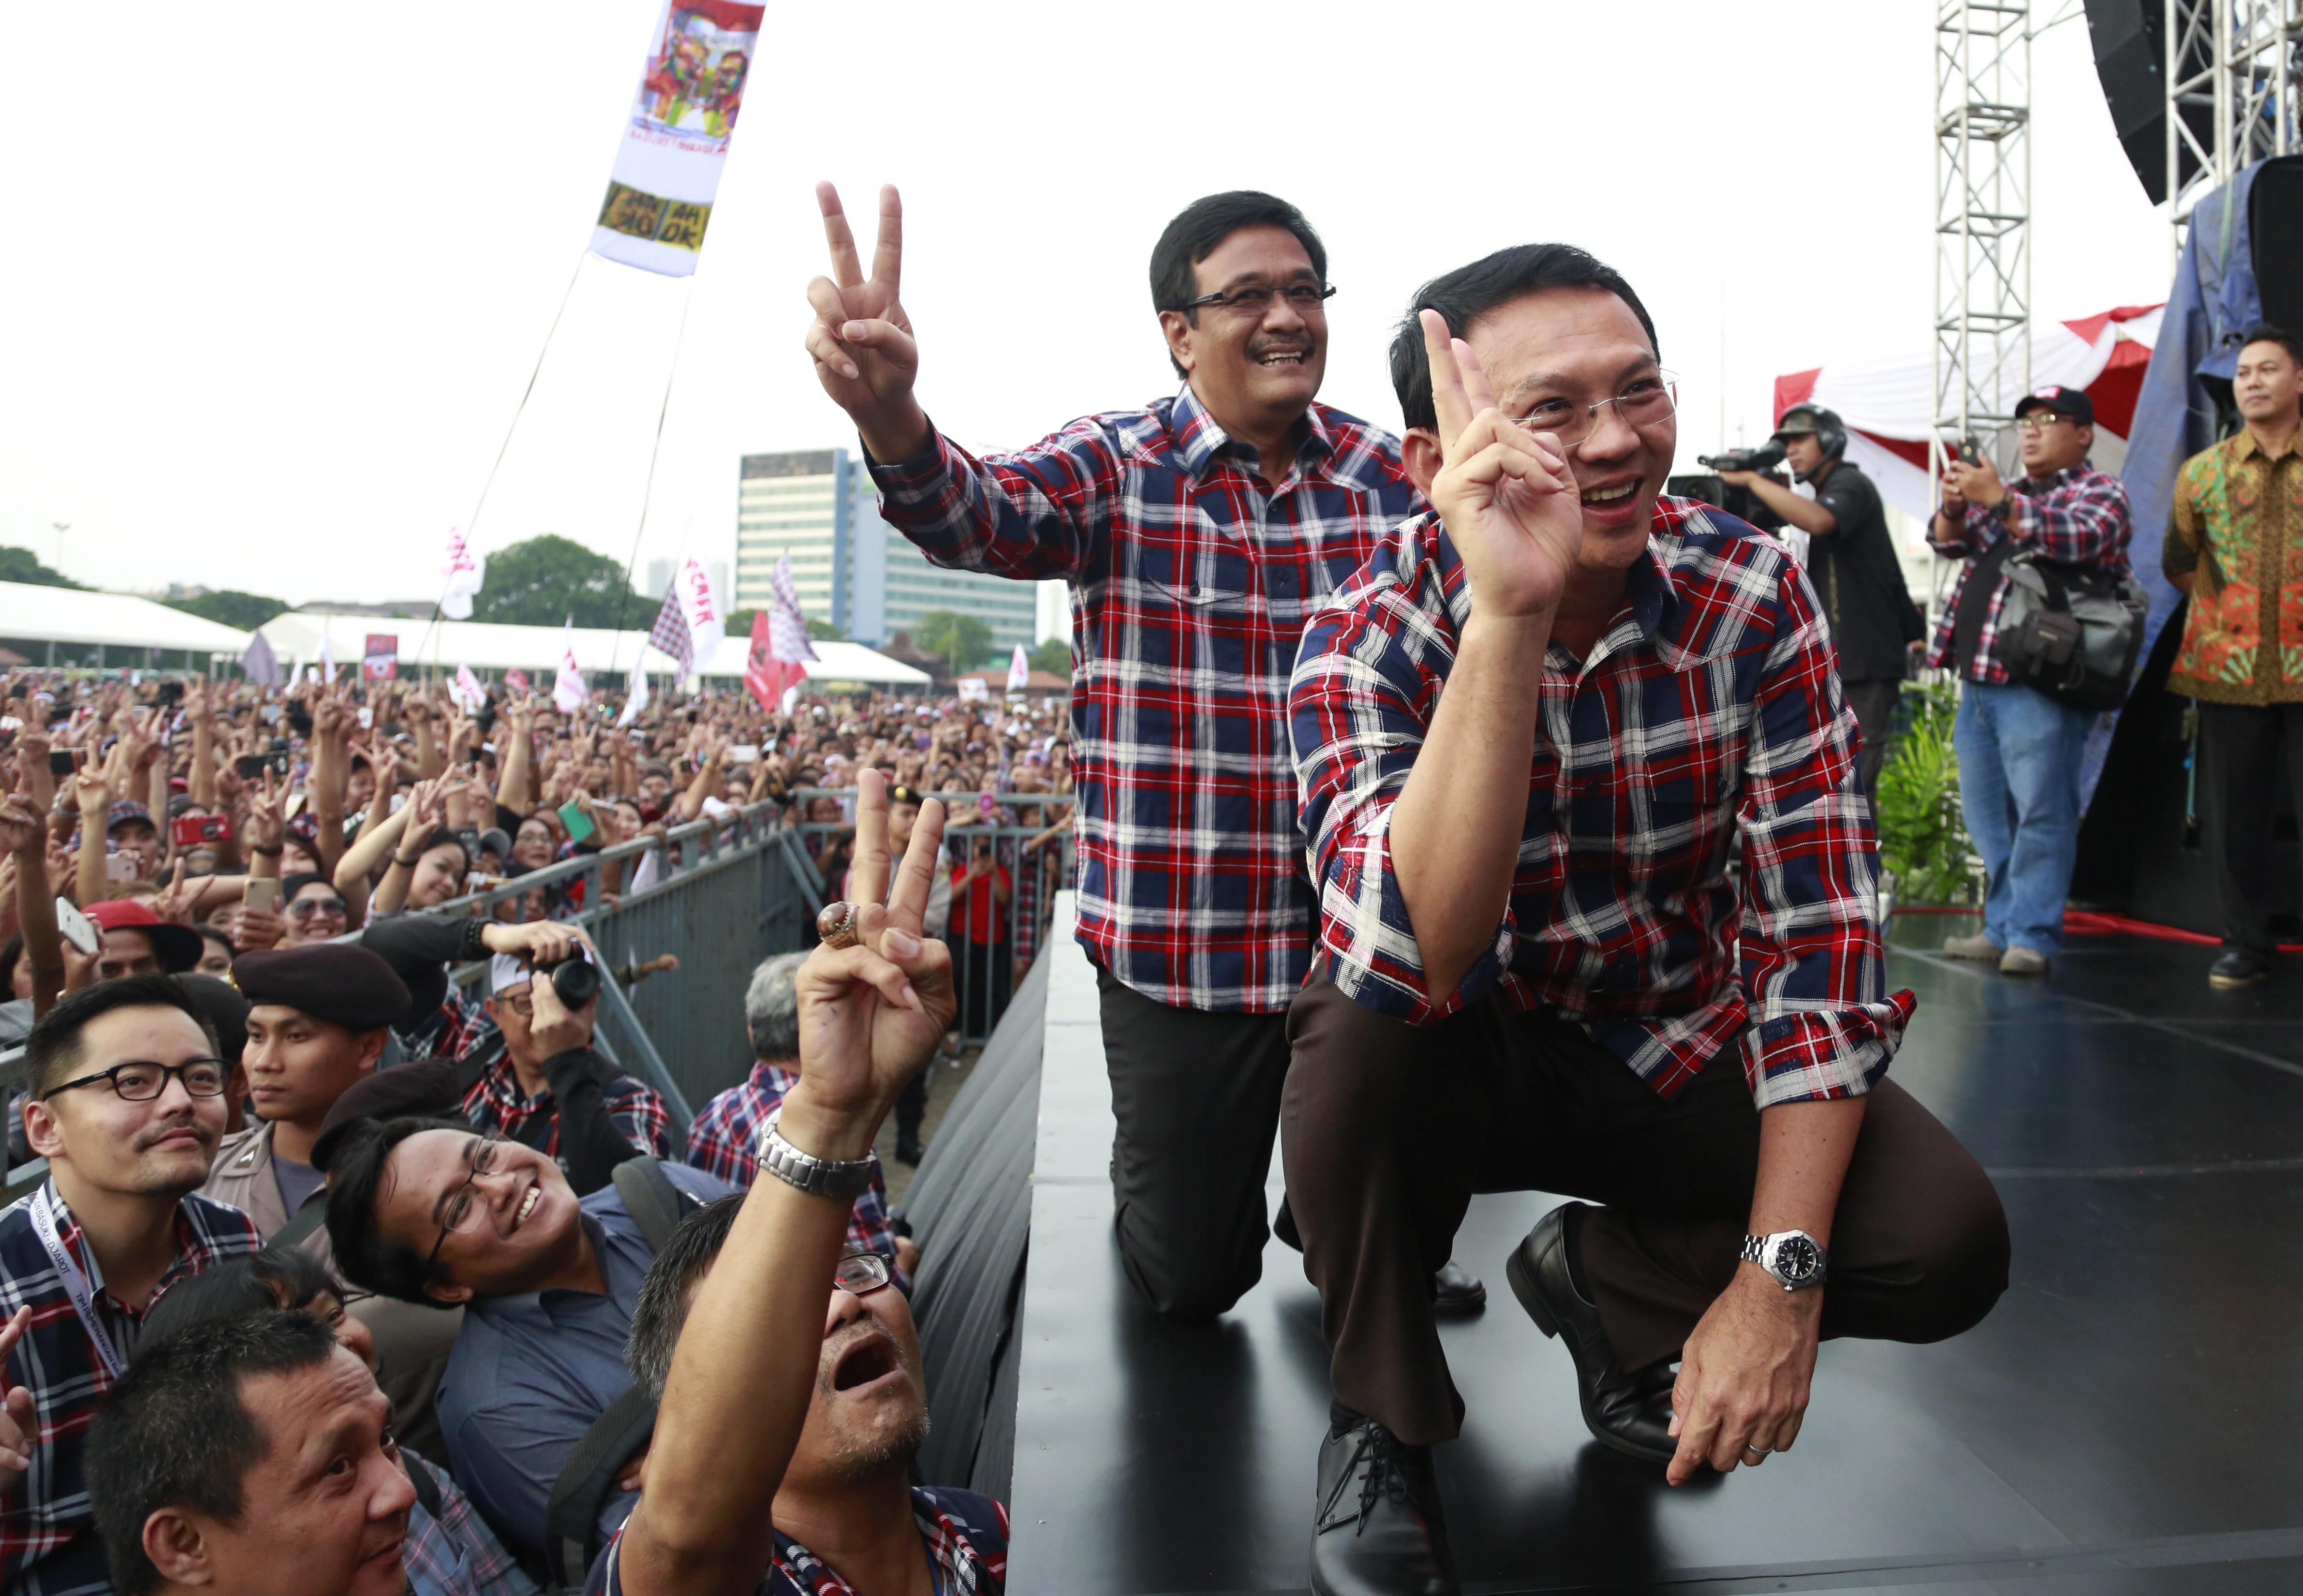 Jakarta Governor Basuki Tjahaja Purnama, also known as Ahok, right, and his deputy and also running mate, Djarot Saiful Hidayat, pose for photographers as they attend a campaign rally in Jakarta on Feb. 11, 2017